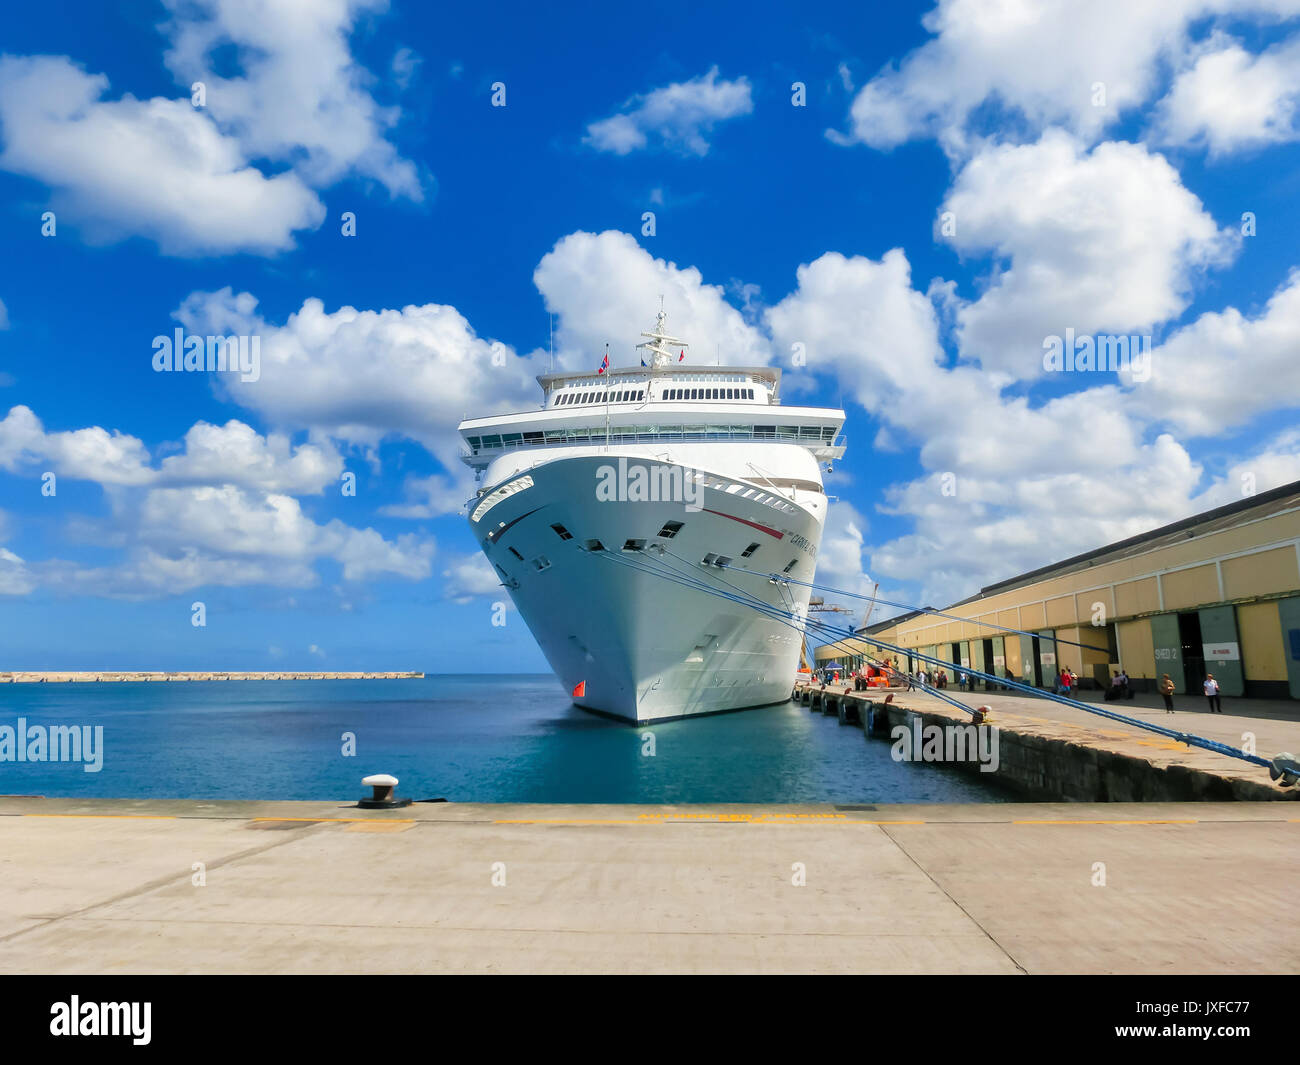 Barbados - May 11, 2016: The Carnival Cruise Ship Fascination at dock - Stock Image